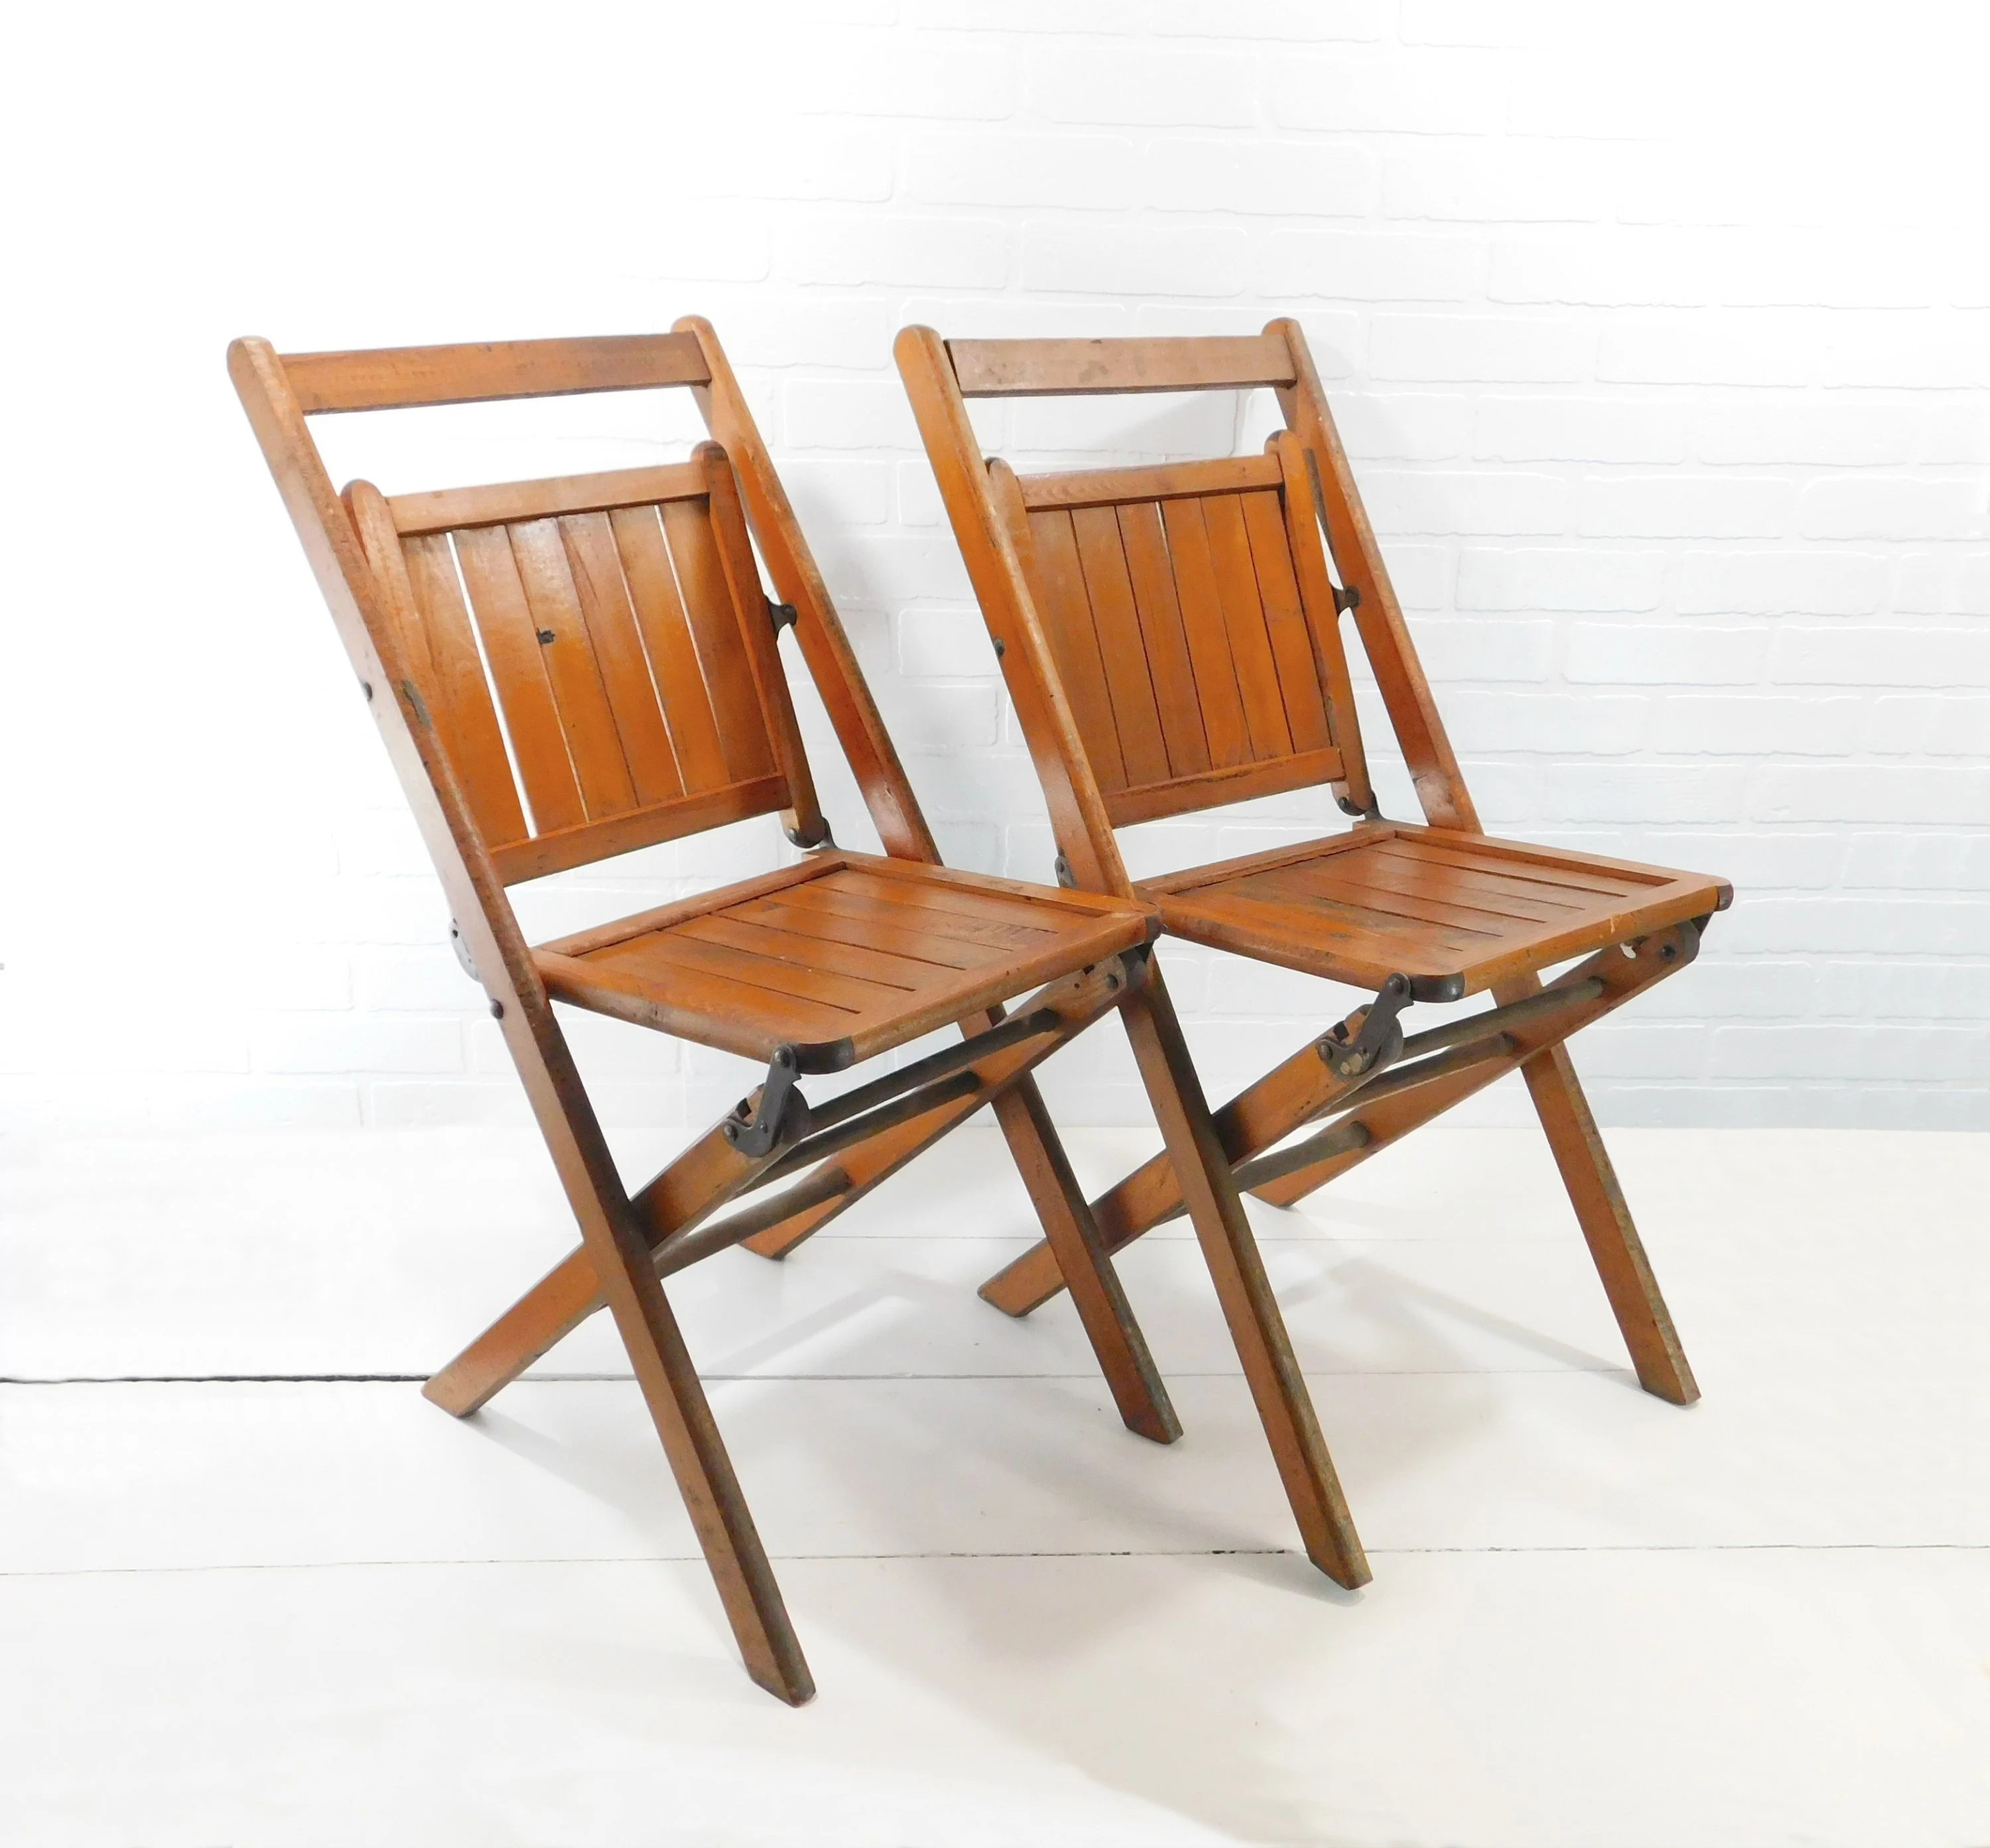 folding wooden chairs office stool chair etsy pair of vintage wood slatted picnic patio event seating wedding glamping c5